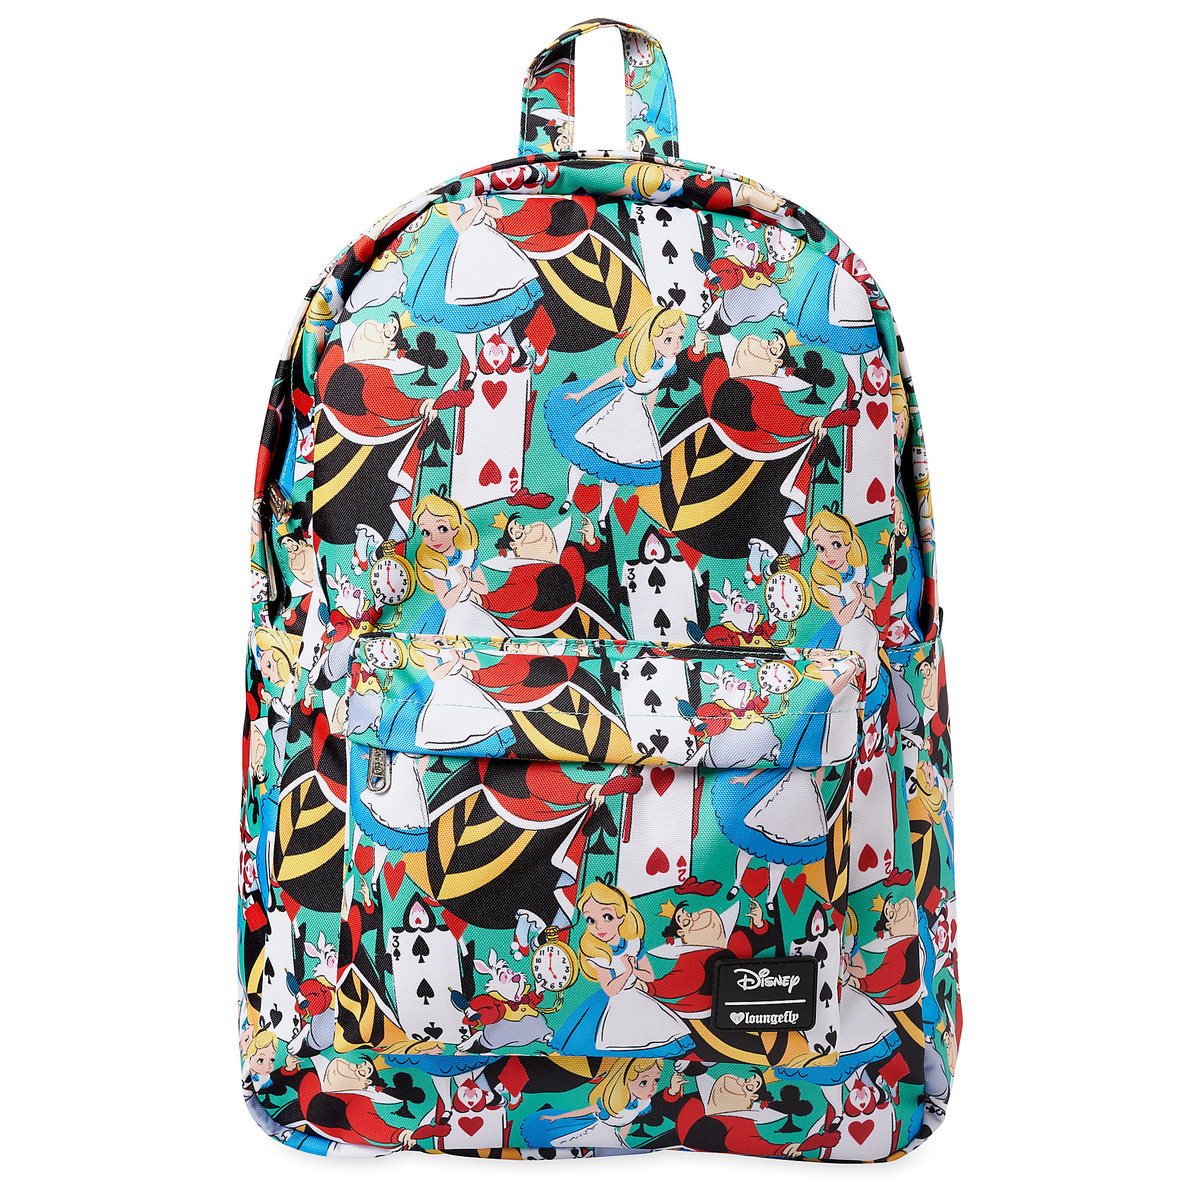 00225e2b82d Product Image of Alice in Wonderland Backpack by Loungefly   1